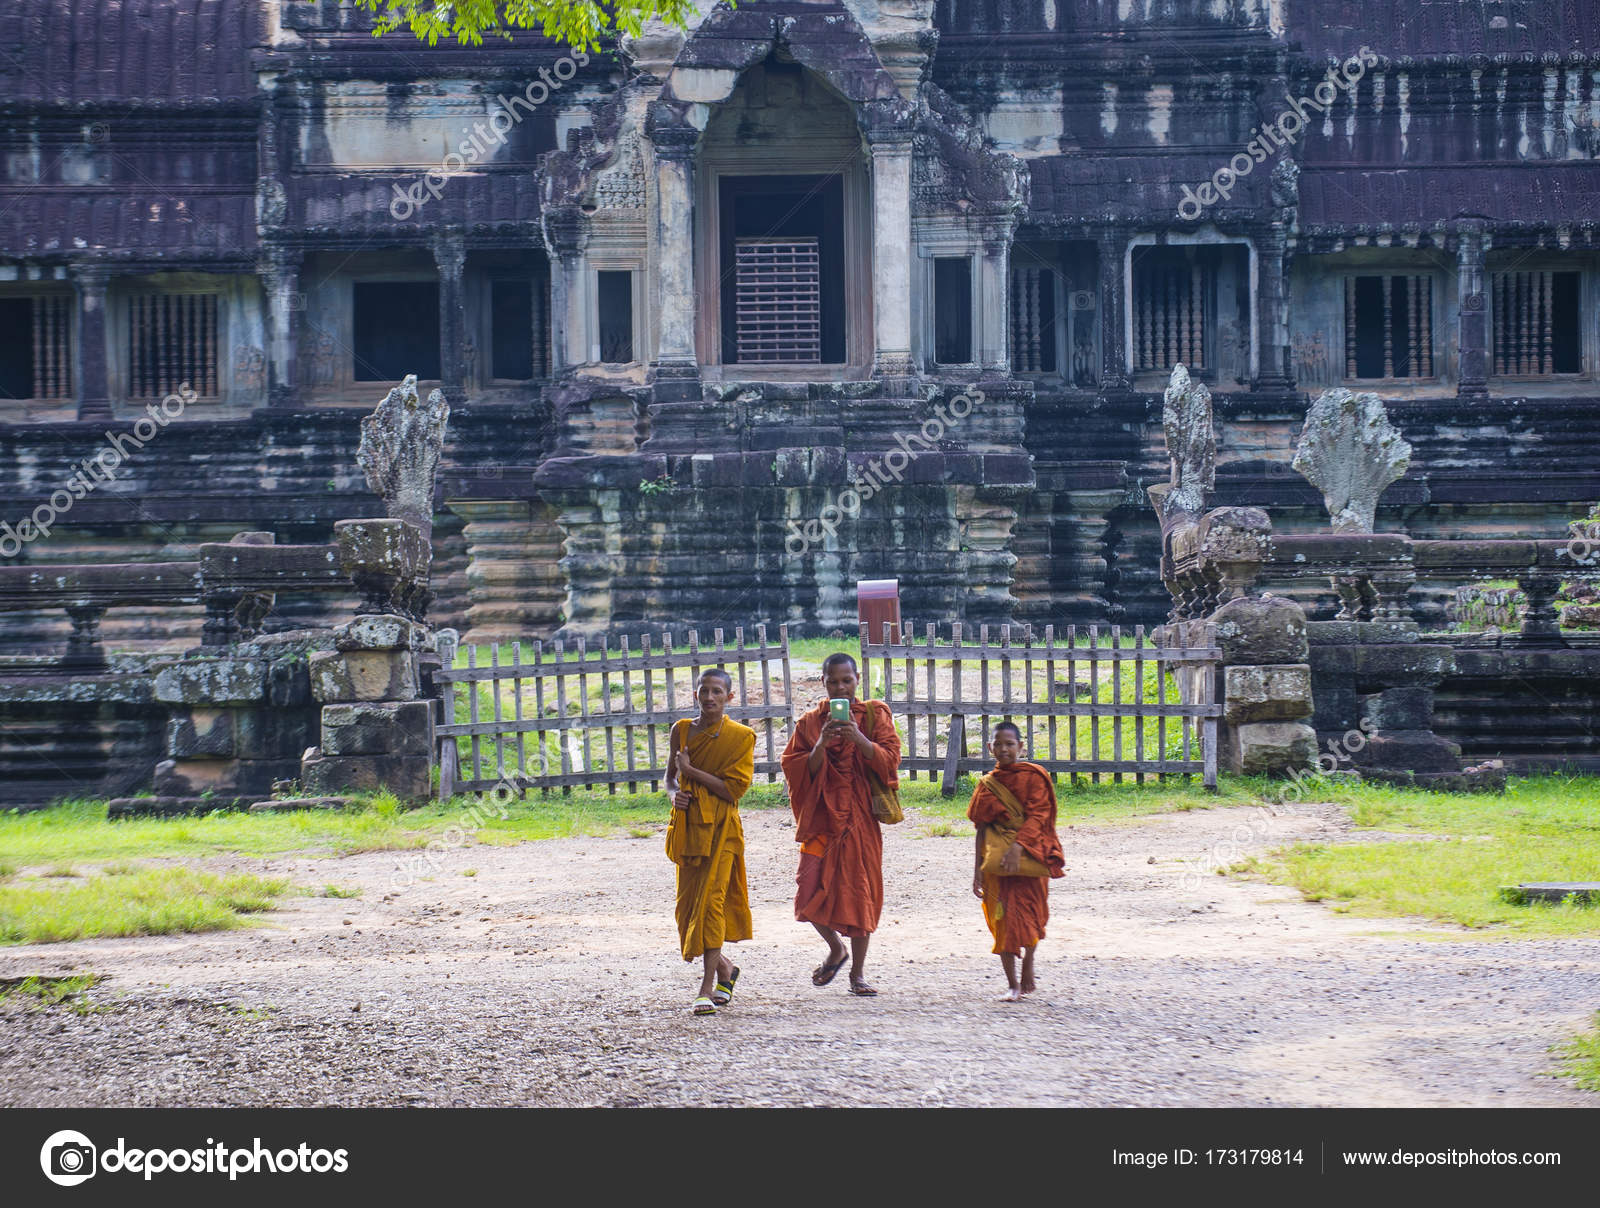 angkor wat temple in cambodia – stock editorial photo © kobbydagan